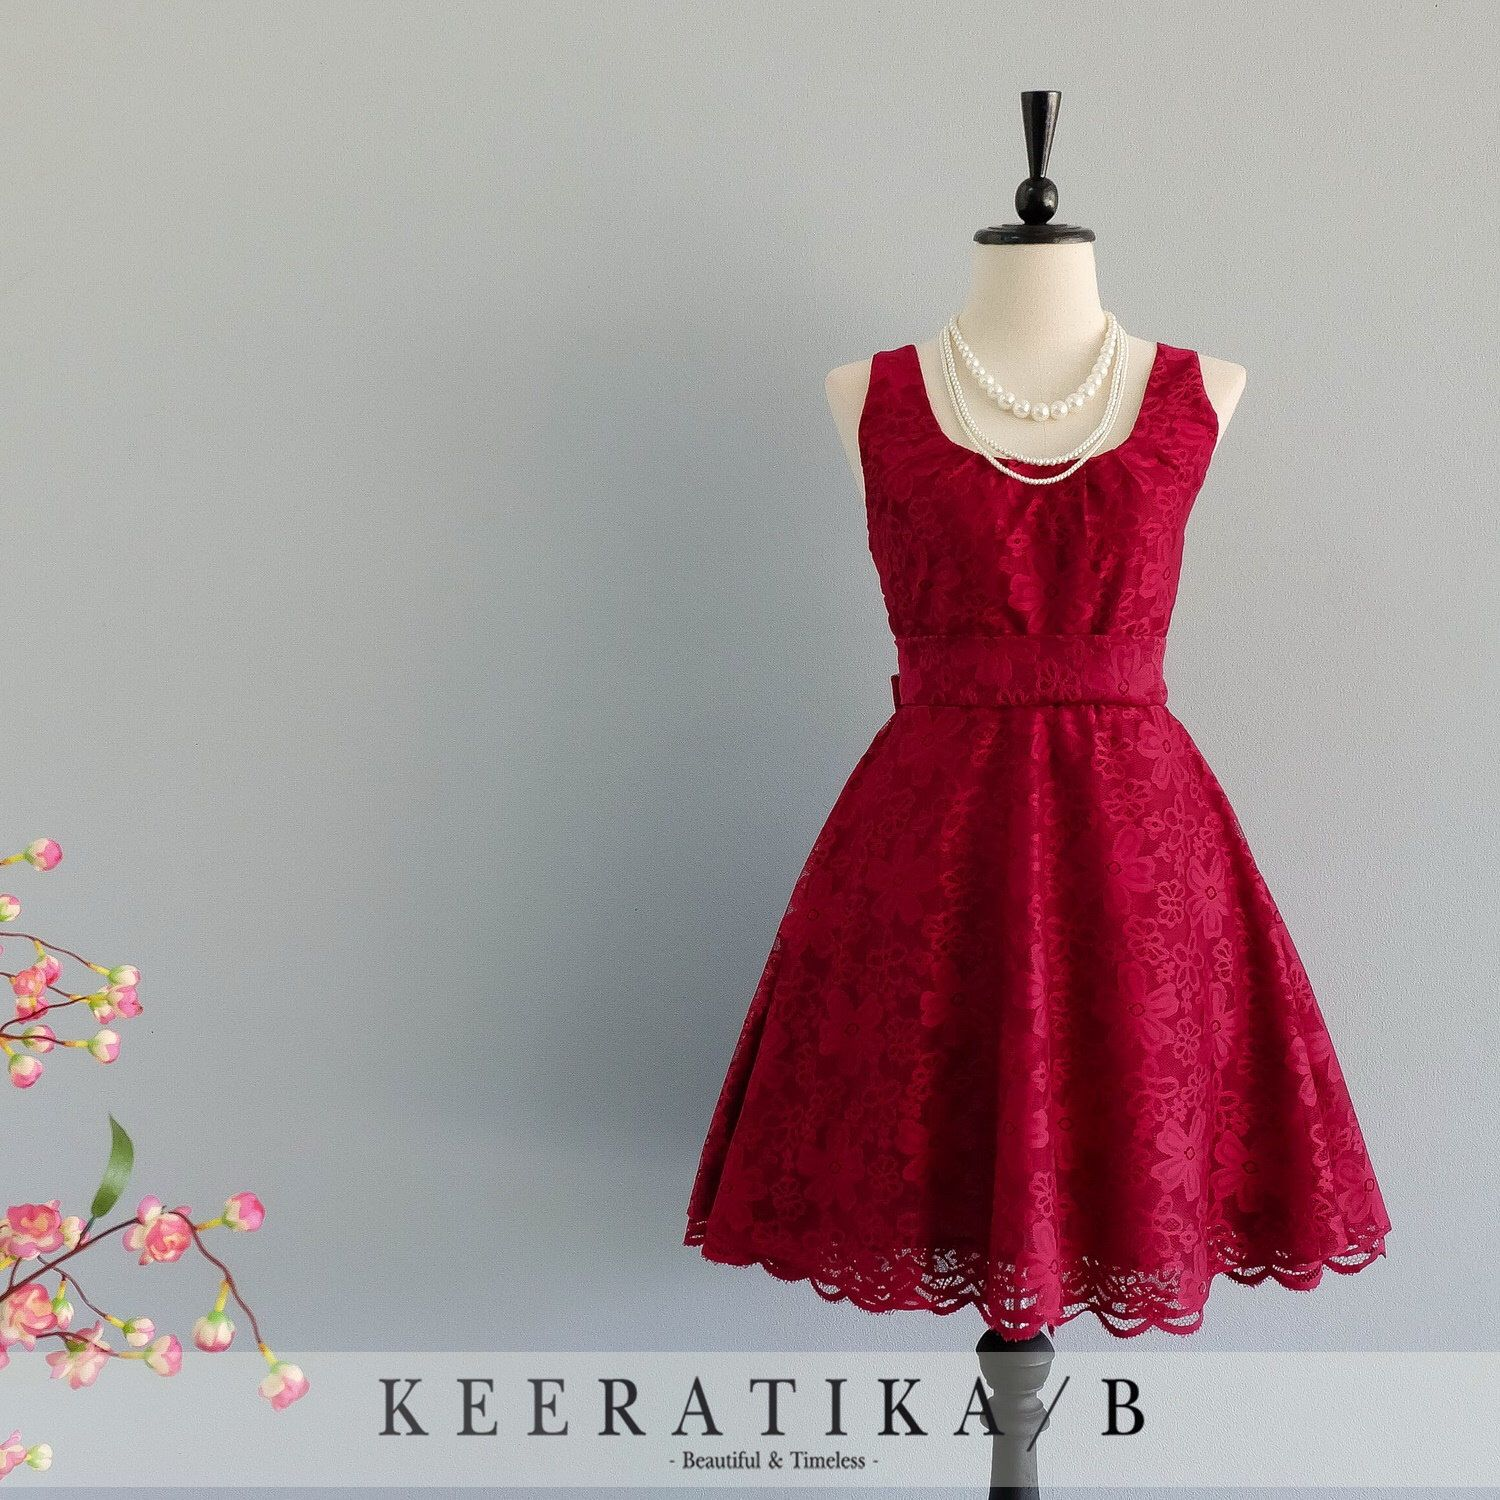 My Lady - Nicely Burgundy Lace Dress Vintage Design Red Lace ...